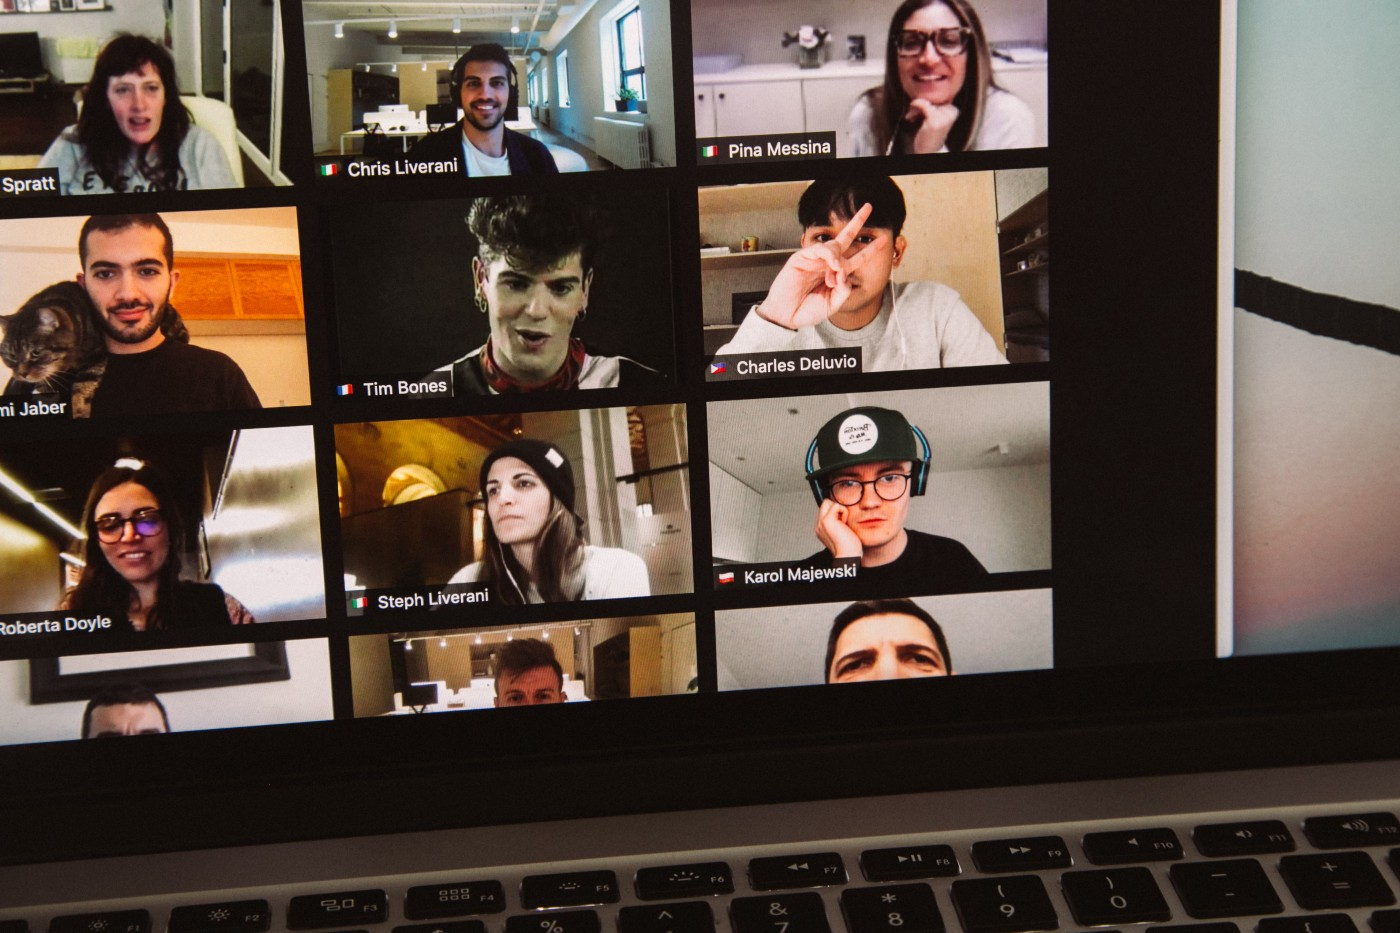 An active video call session underway with many participants, but no captions.